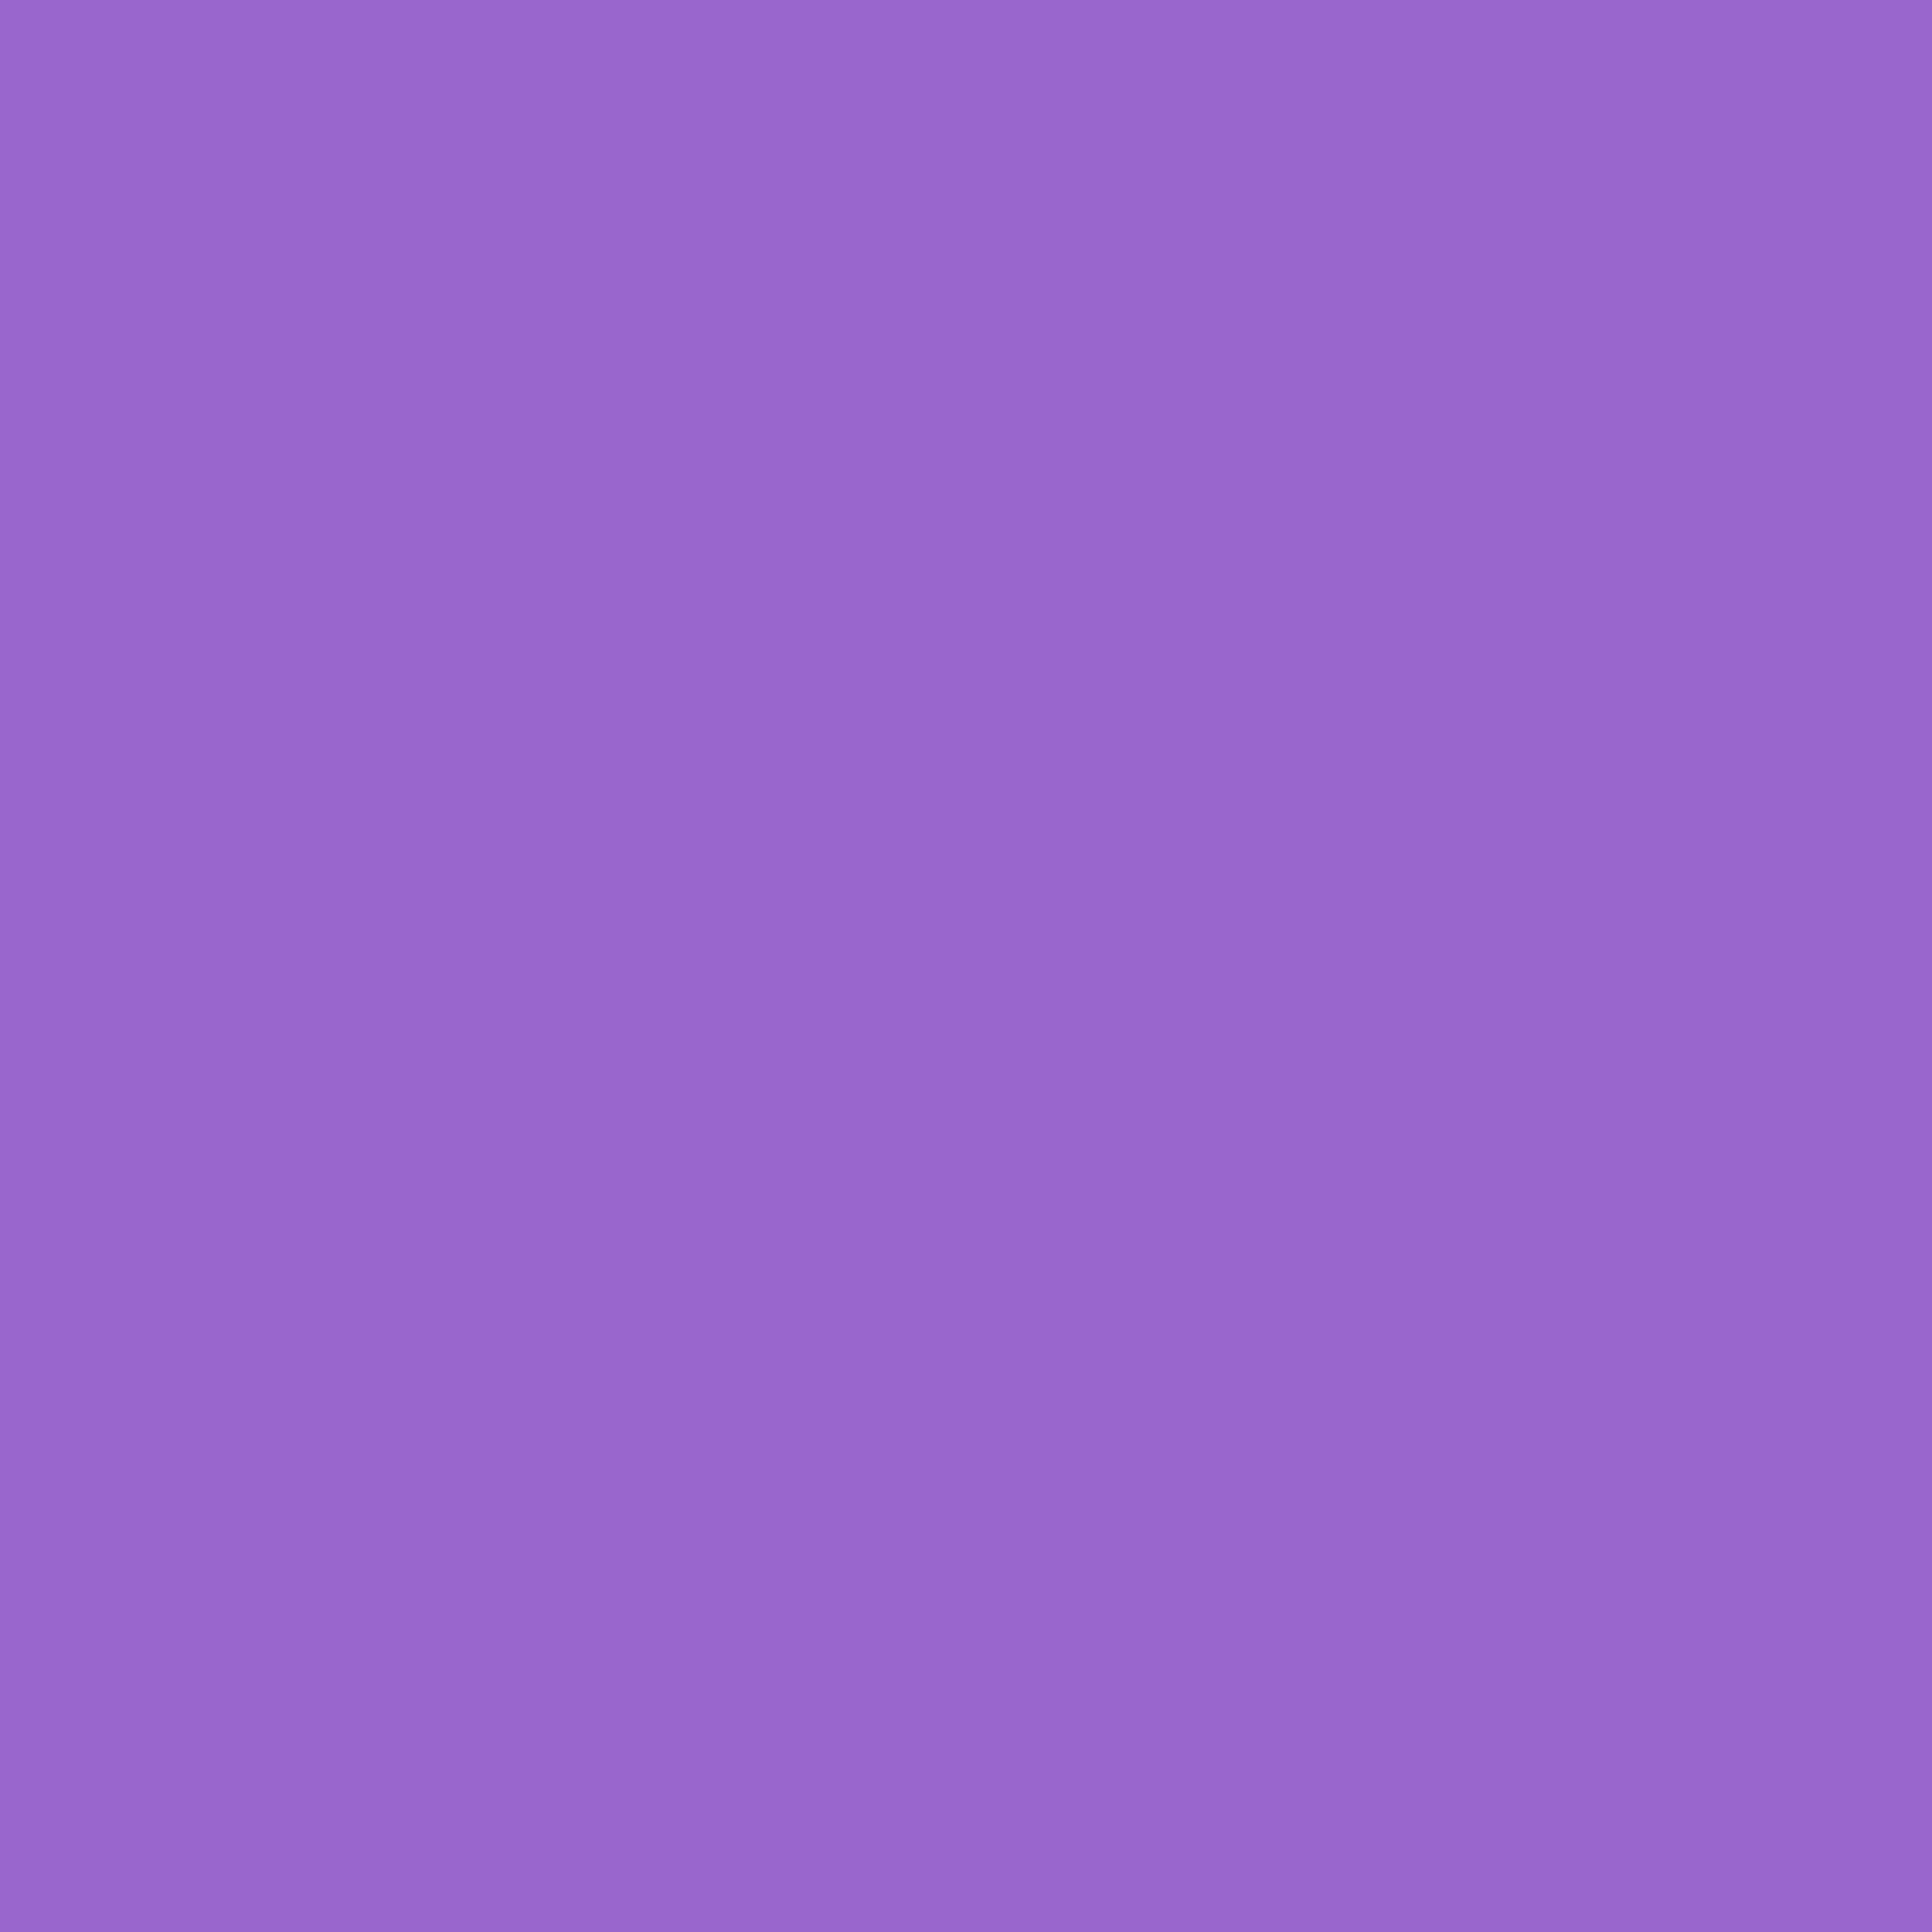 2048x2048 Amethyst Solid Color Background